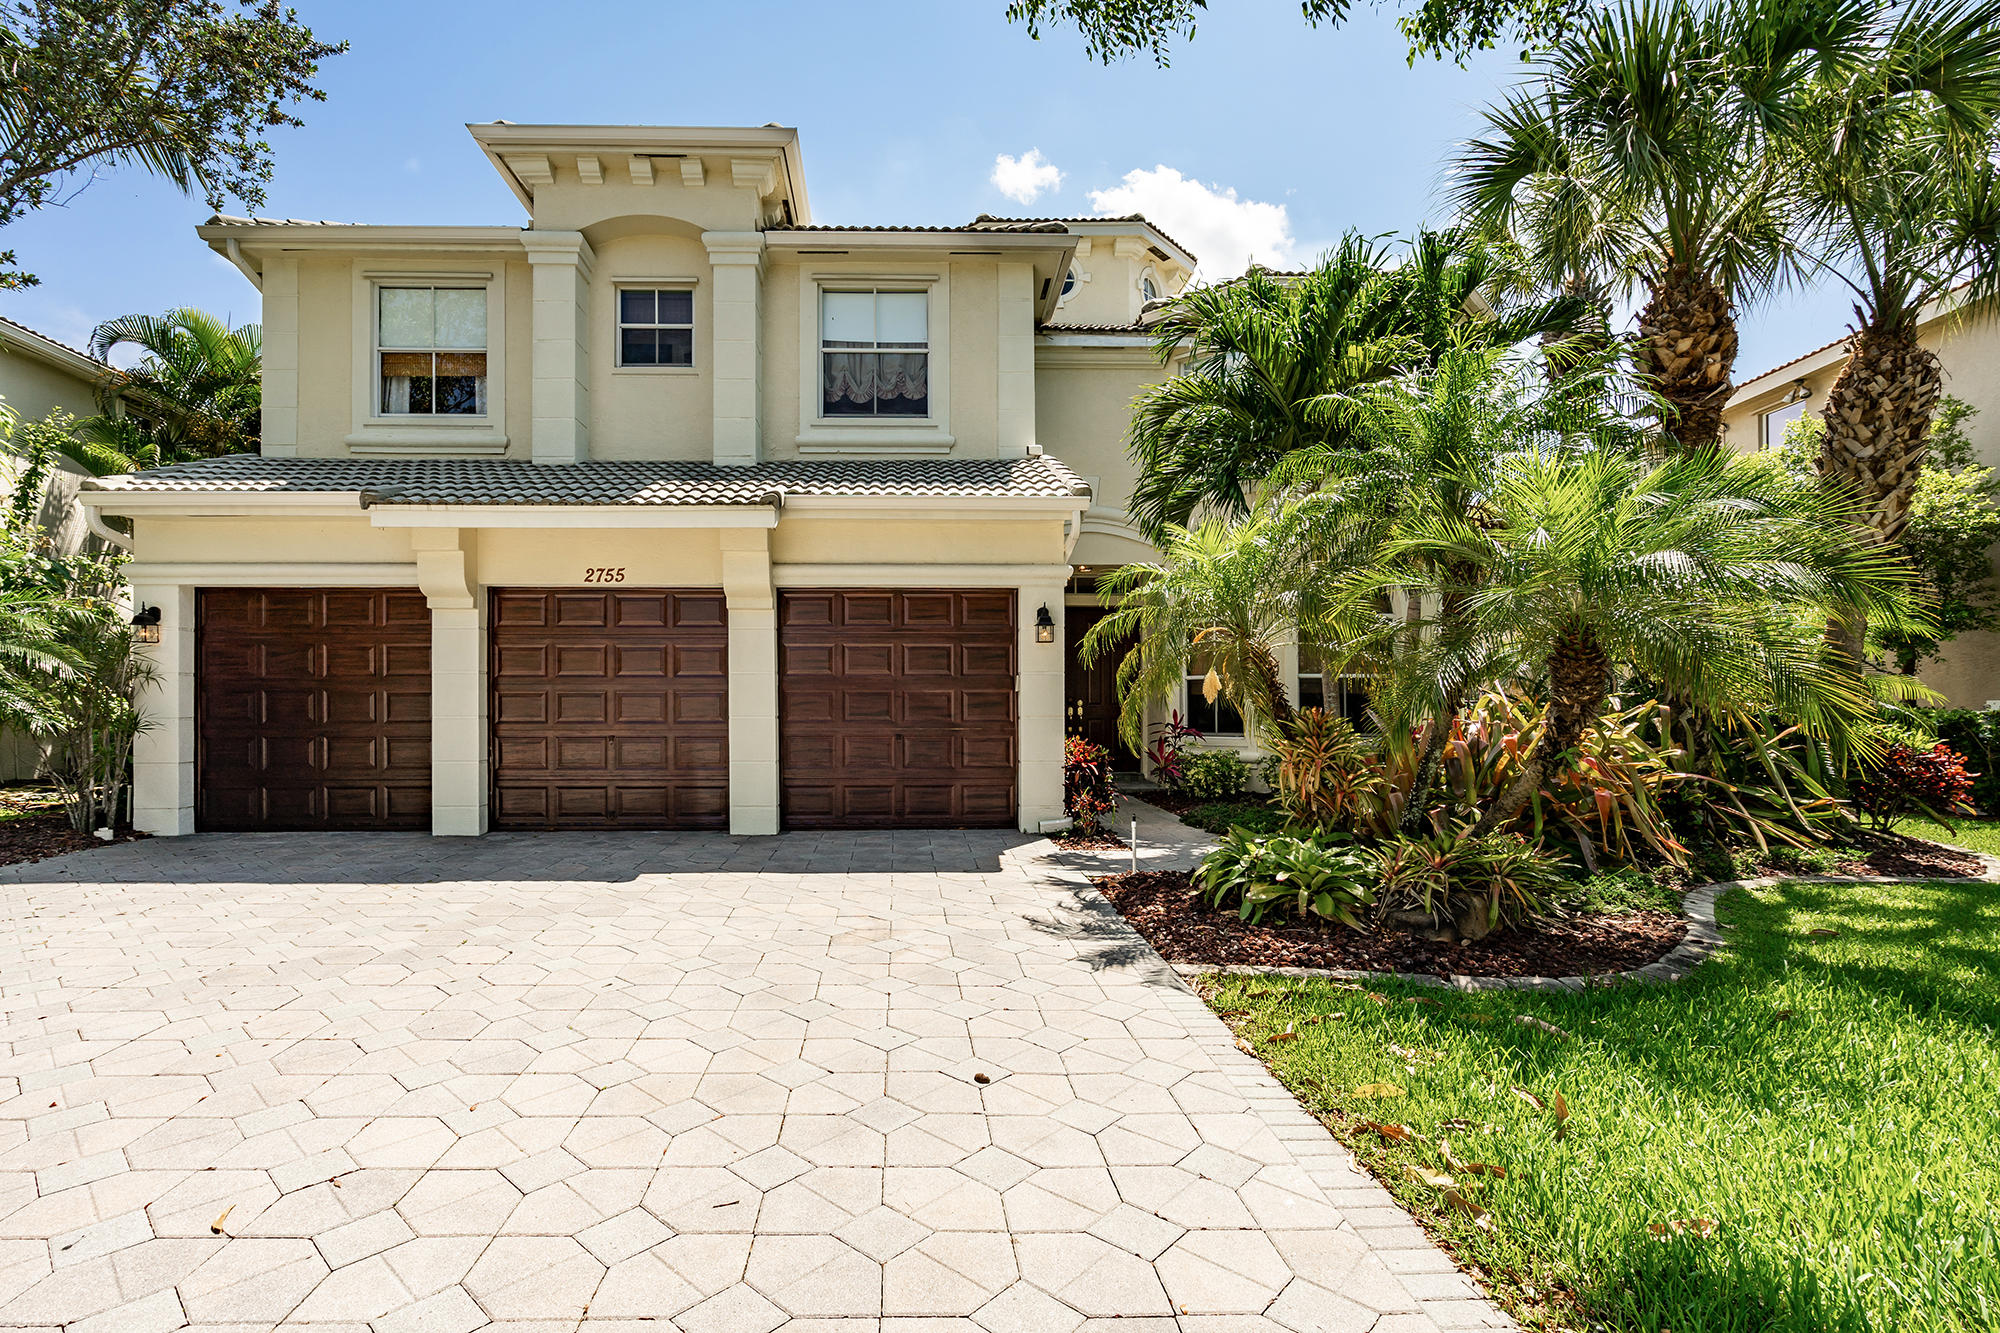 Home for sale in Olympia Danforth Wellington Florida